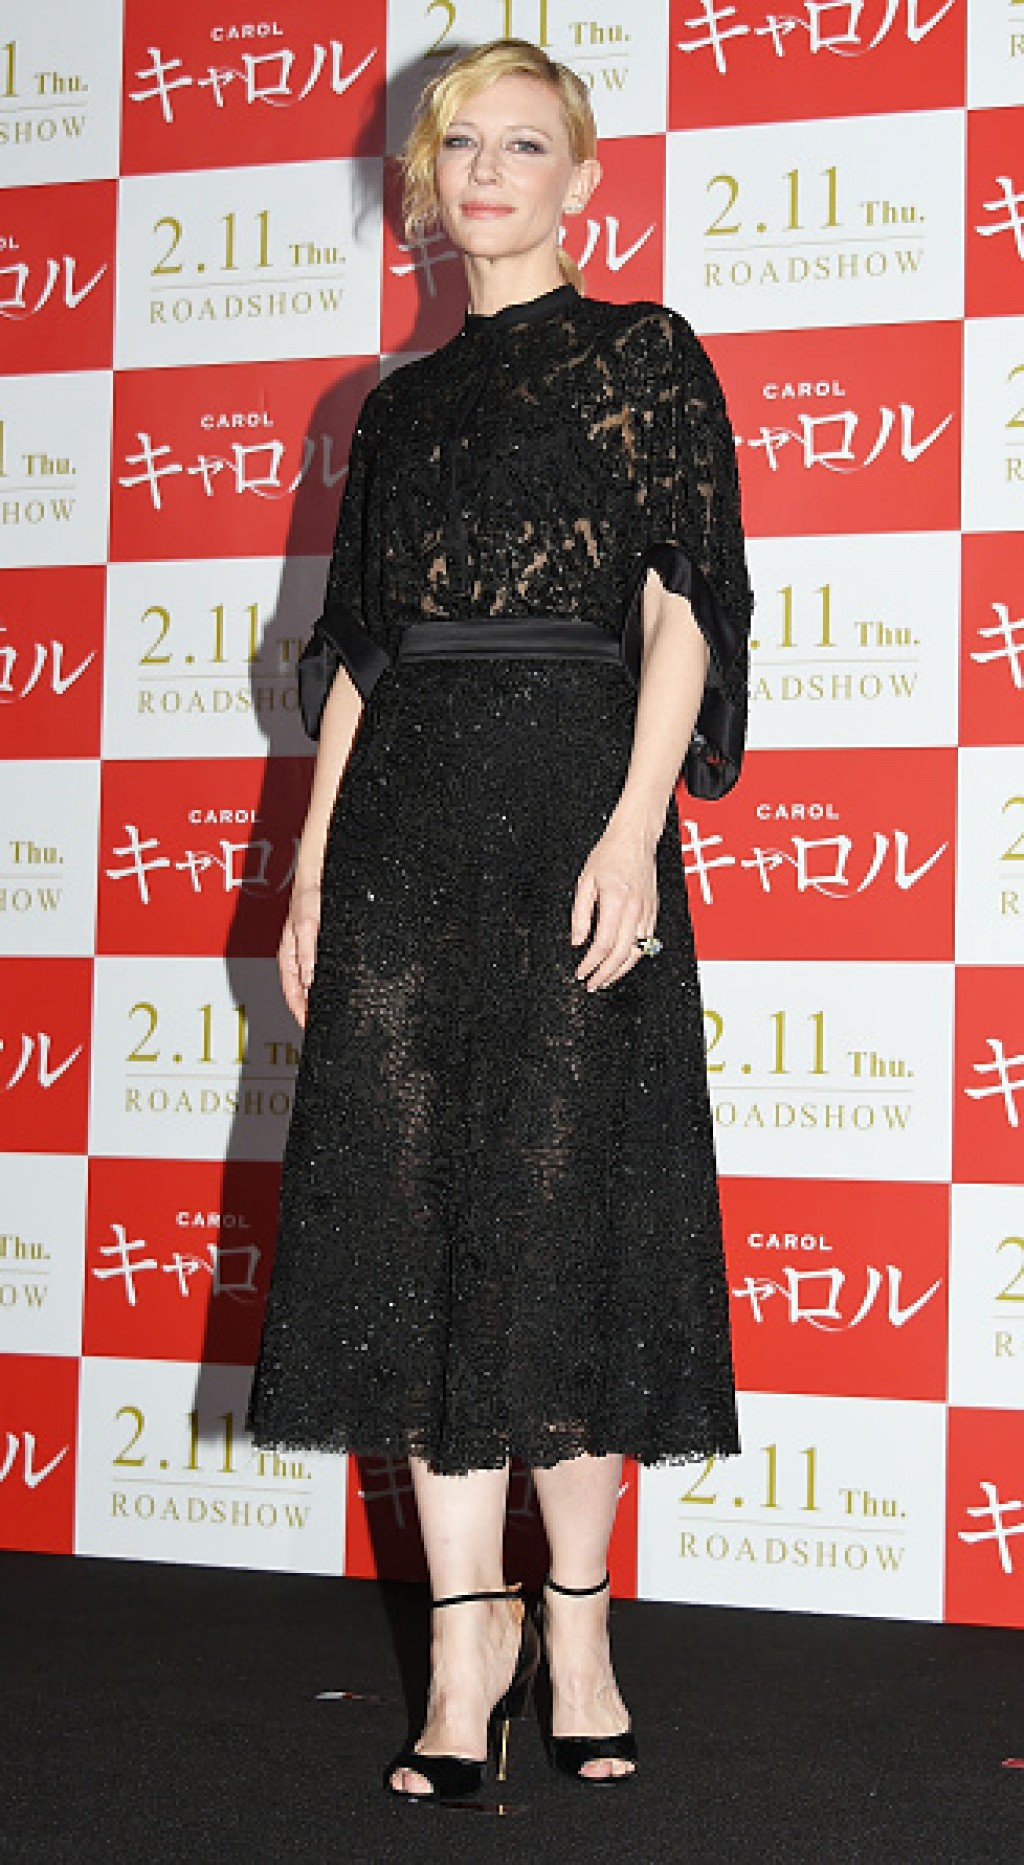 Carol-Stage-Greeting-In-Tokyo-Cate-Blanchett-Makeup-Dress-Givenchy-1024x1865